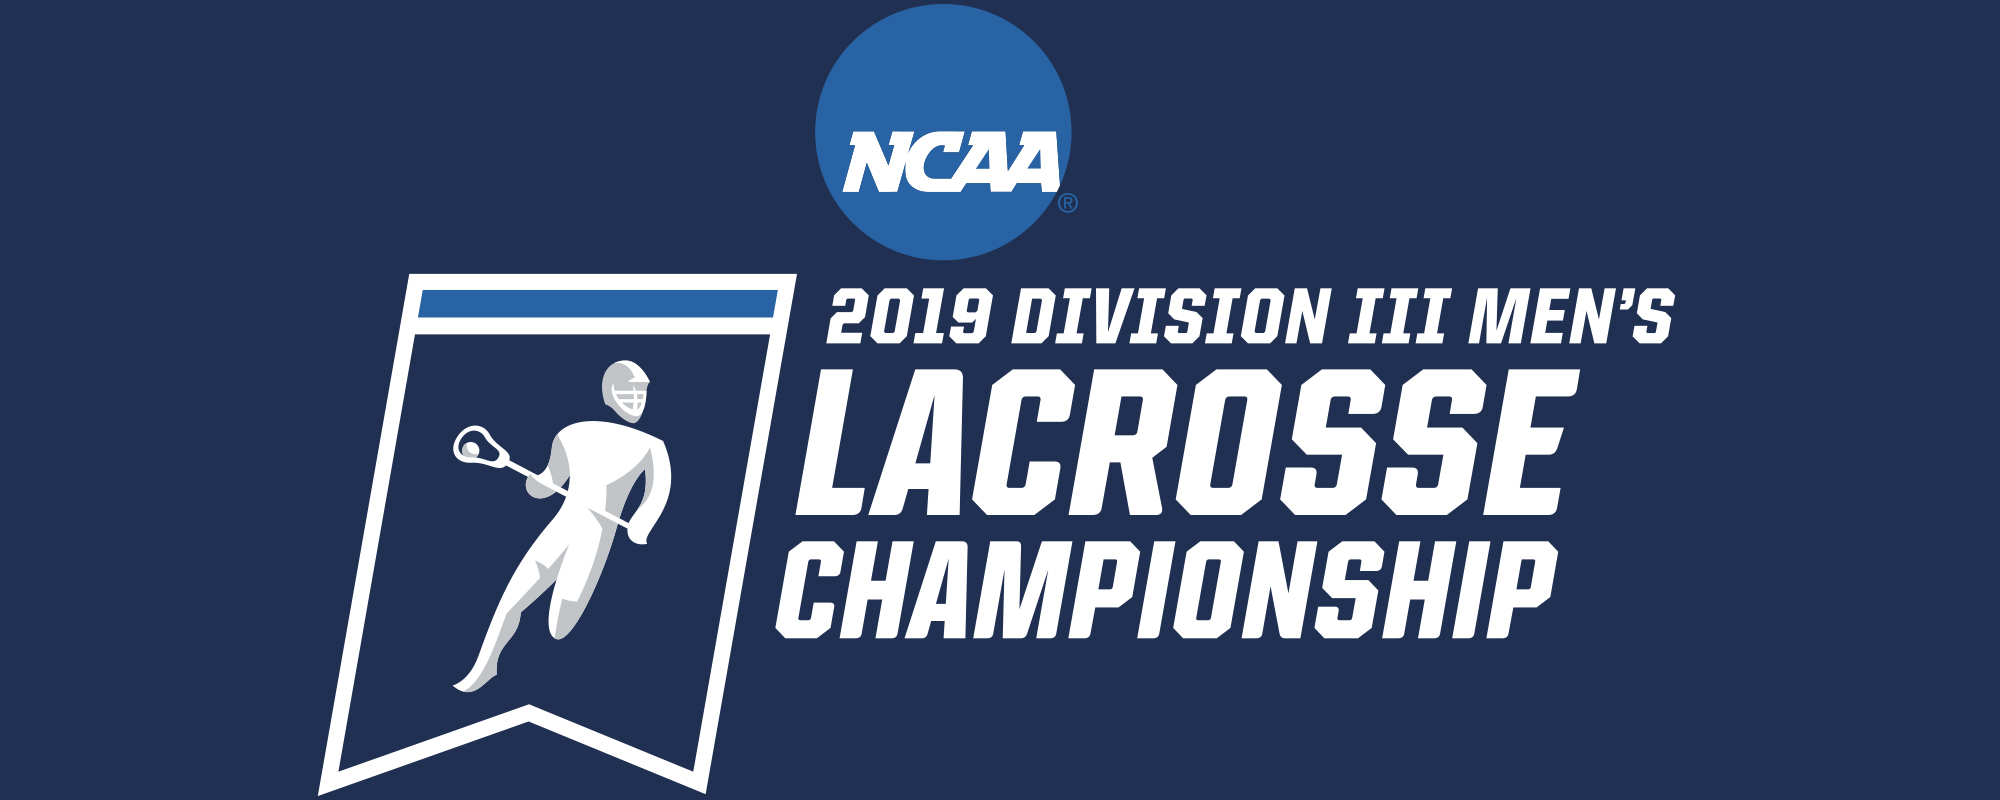 NCAA Men's Lacrosse Selection Show Airs Sunday at 9 pm